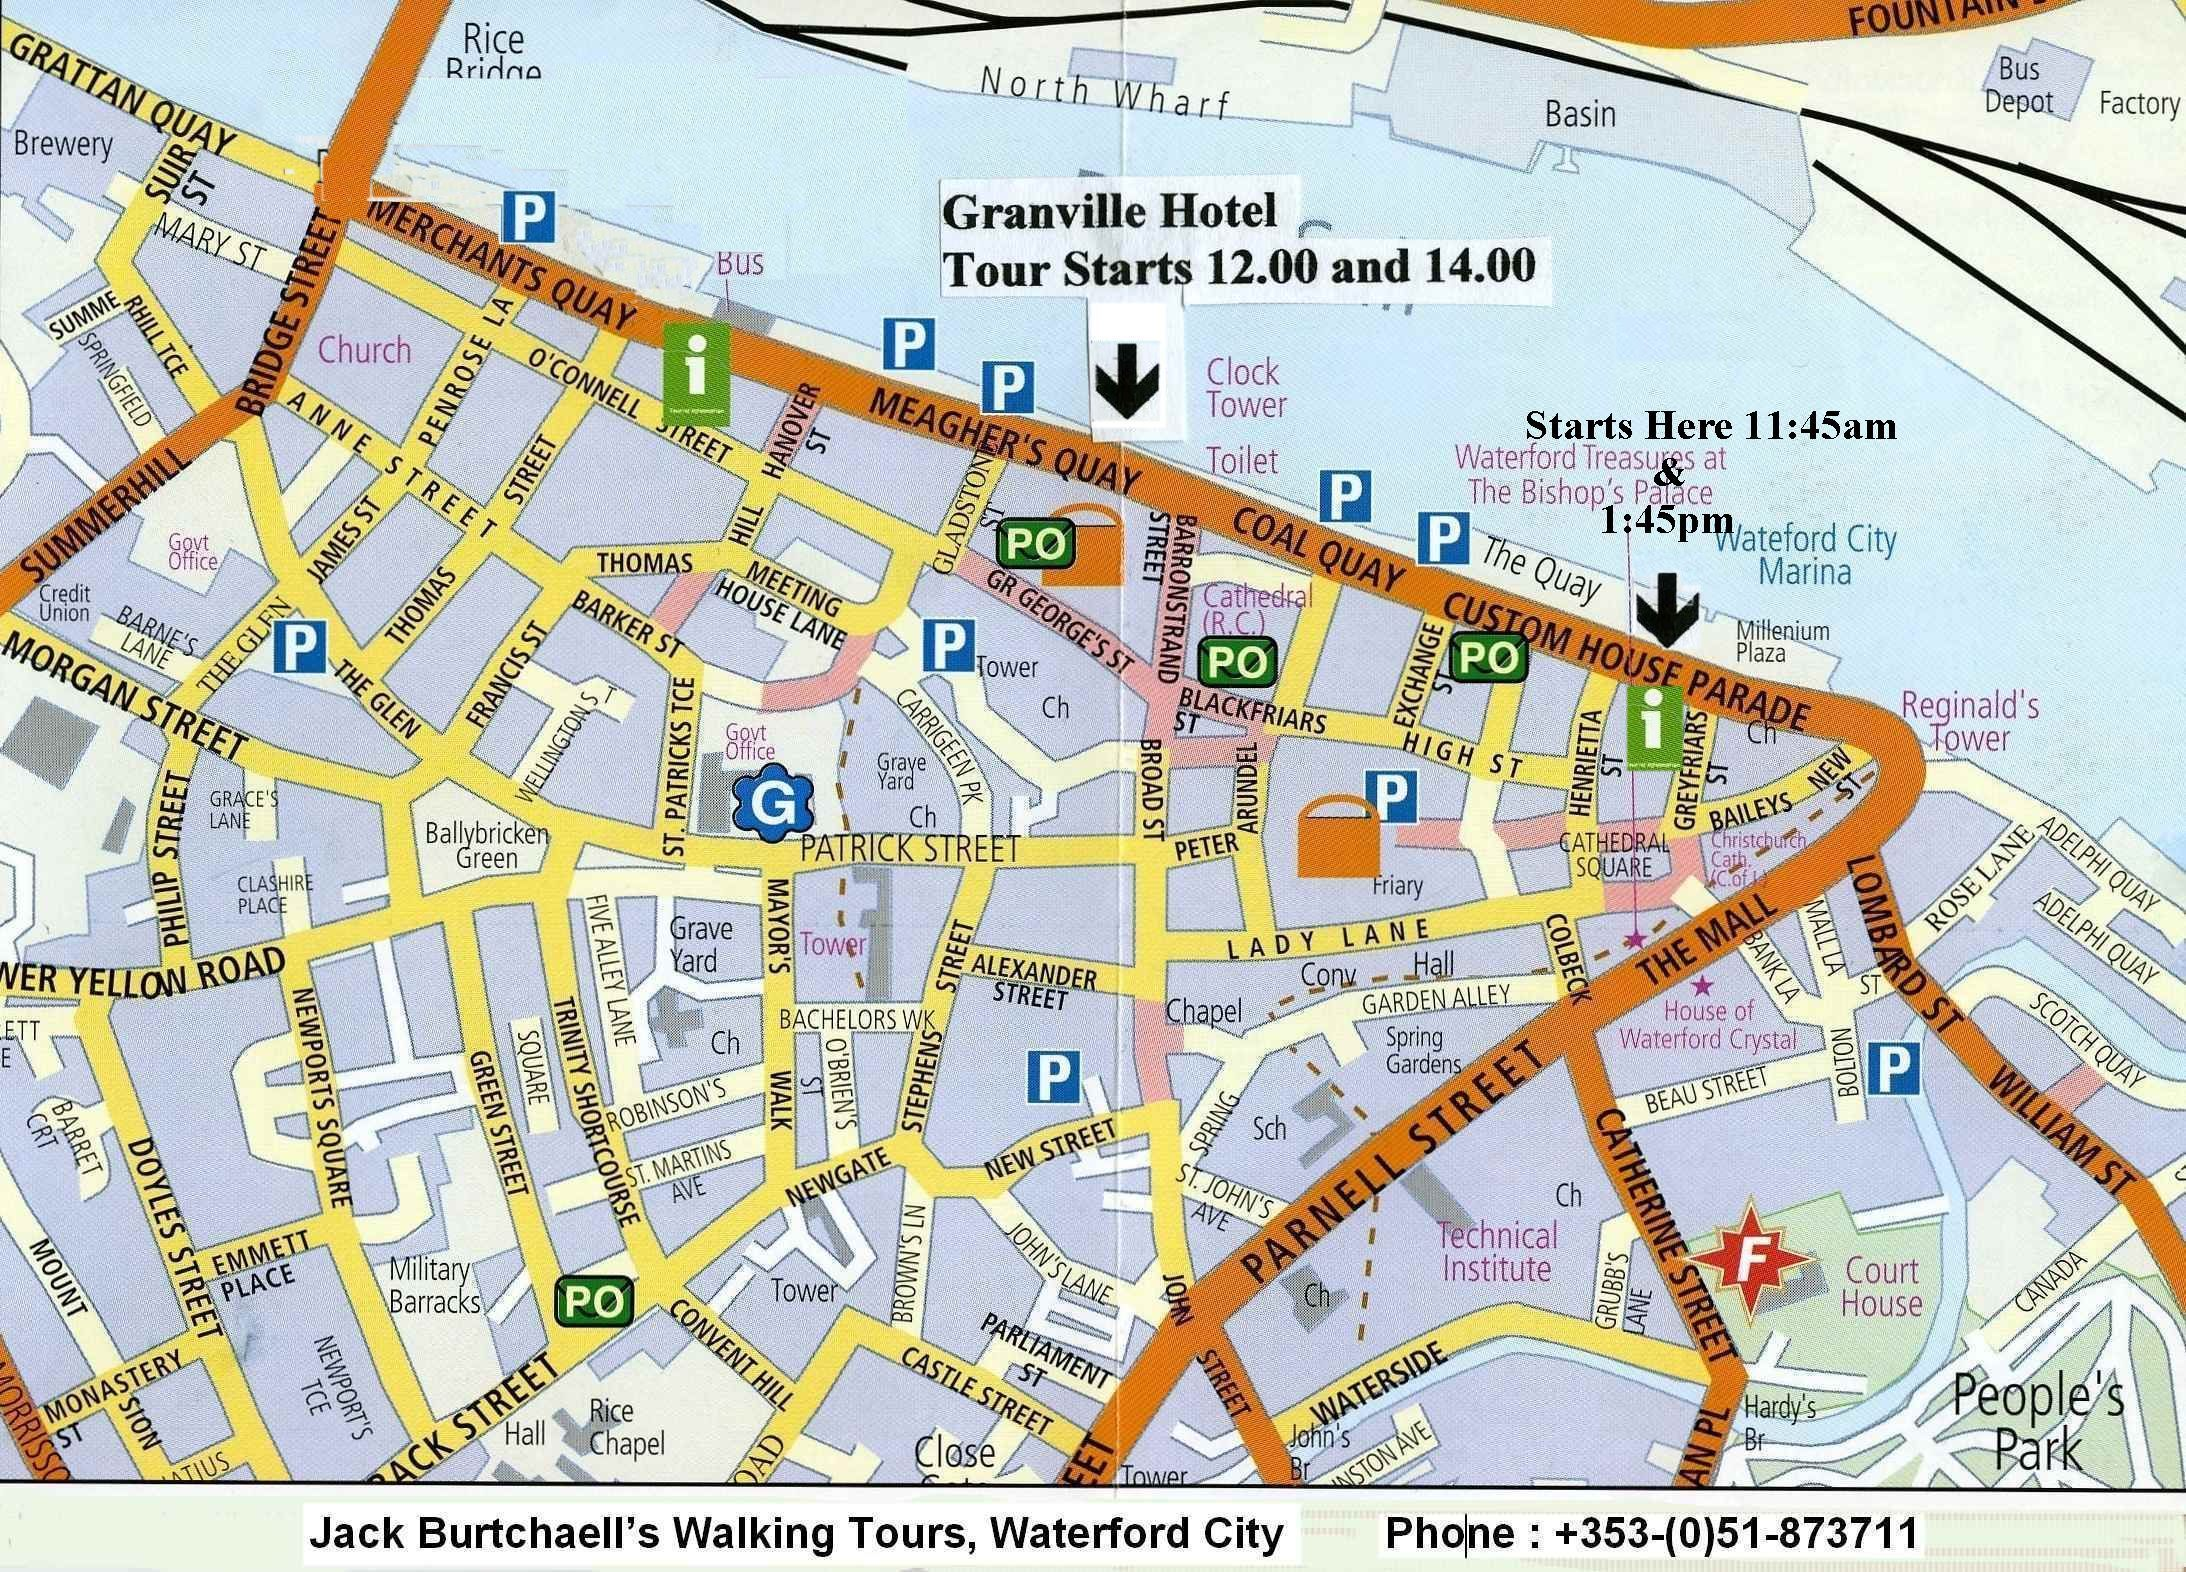 Jack Burtchaell's Walking Tour Map of  Waterford City, Ireland.